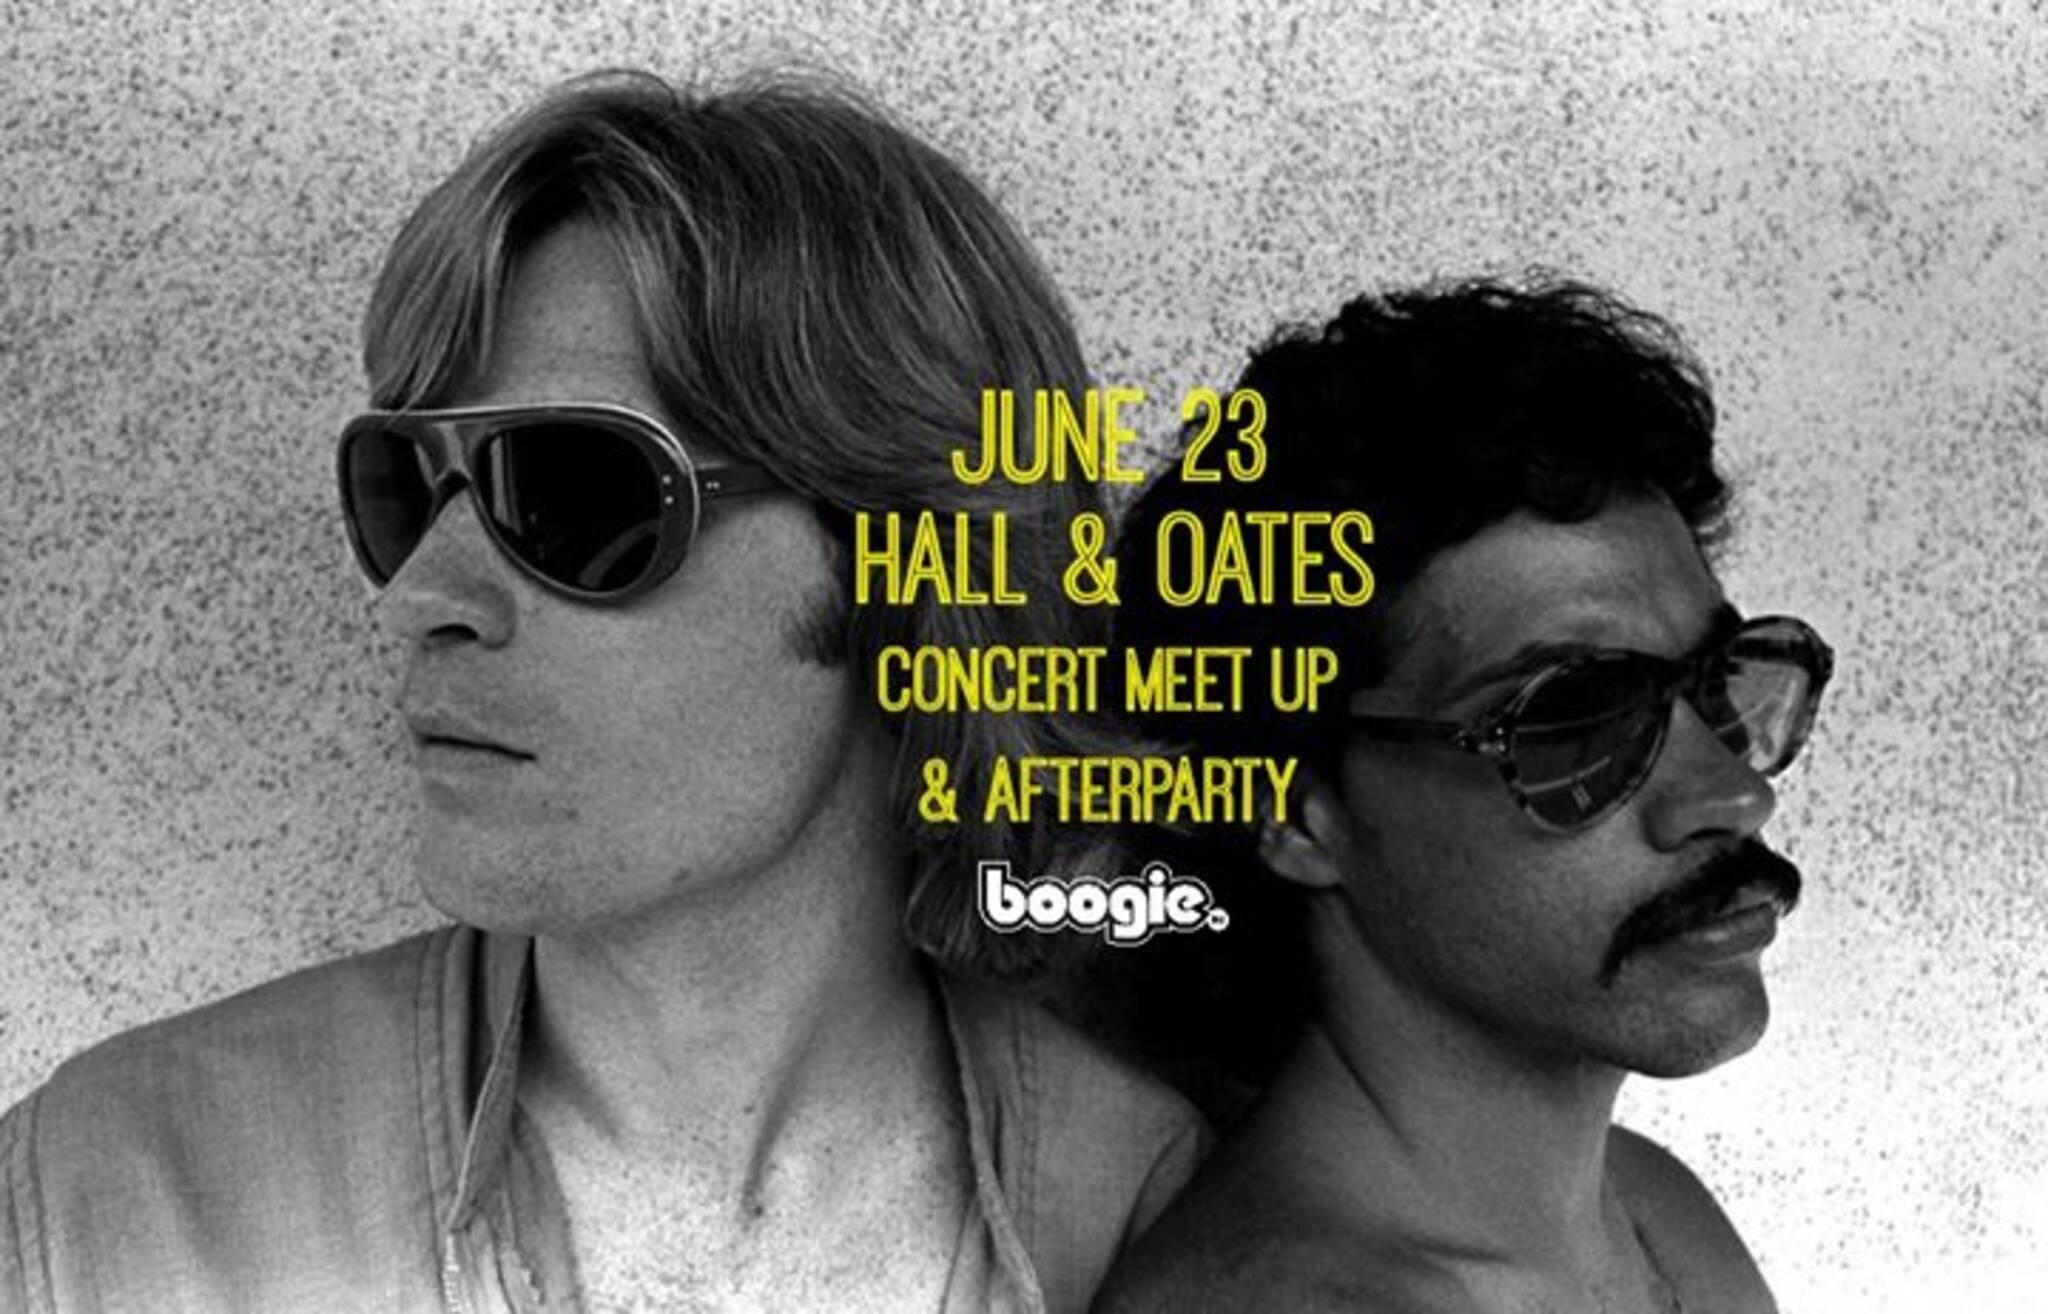 Hall oates concert meet up afterparty june 23 m4hsunfo